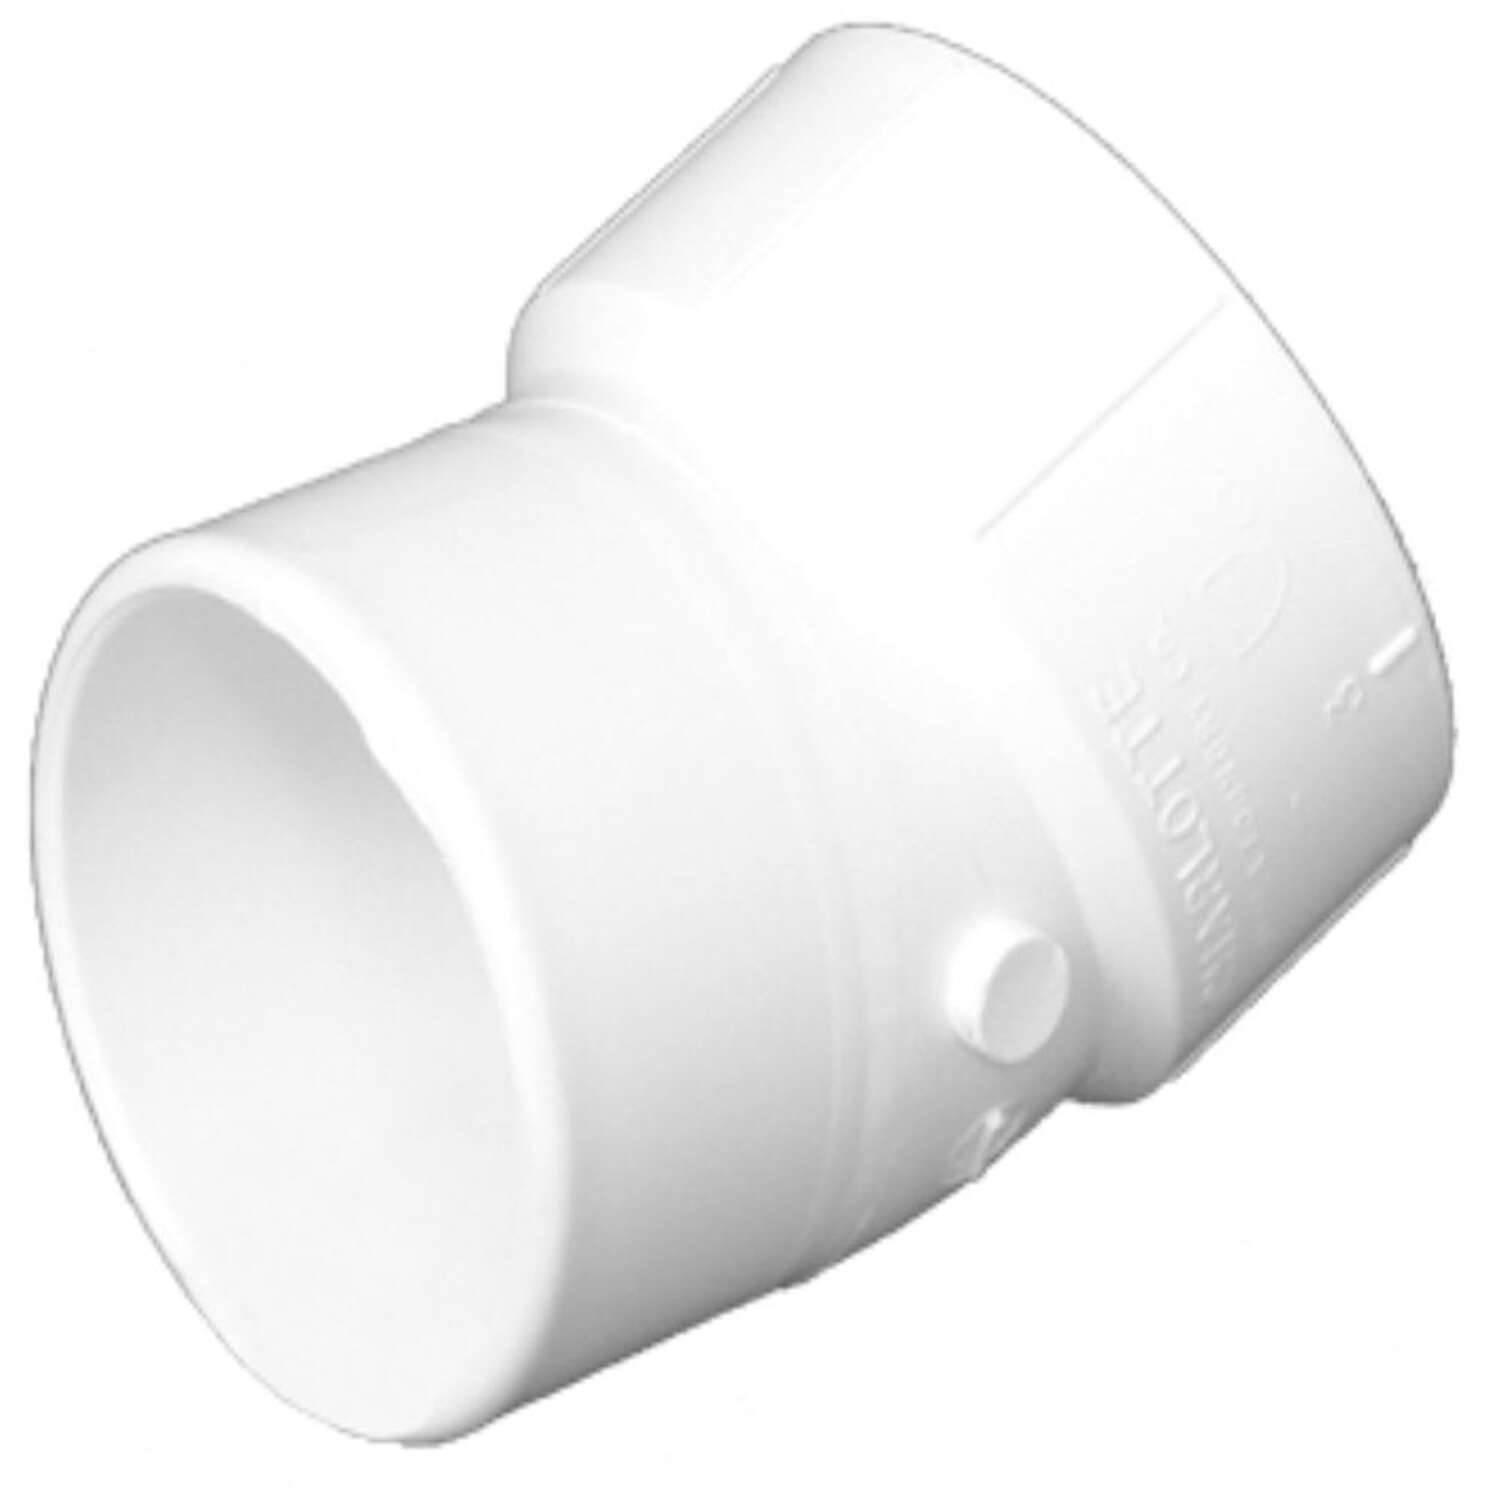 Charlotte Pipe  Schedule 40  4 in. Hub   x 4 in. Dia. Spigot  PVC  22-1/2 Degree Street Elbow